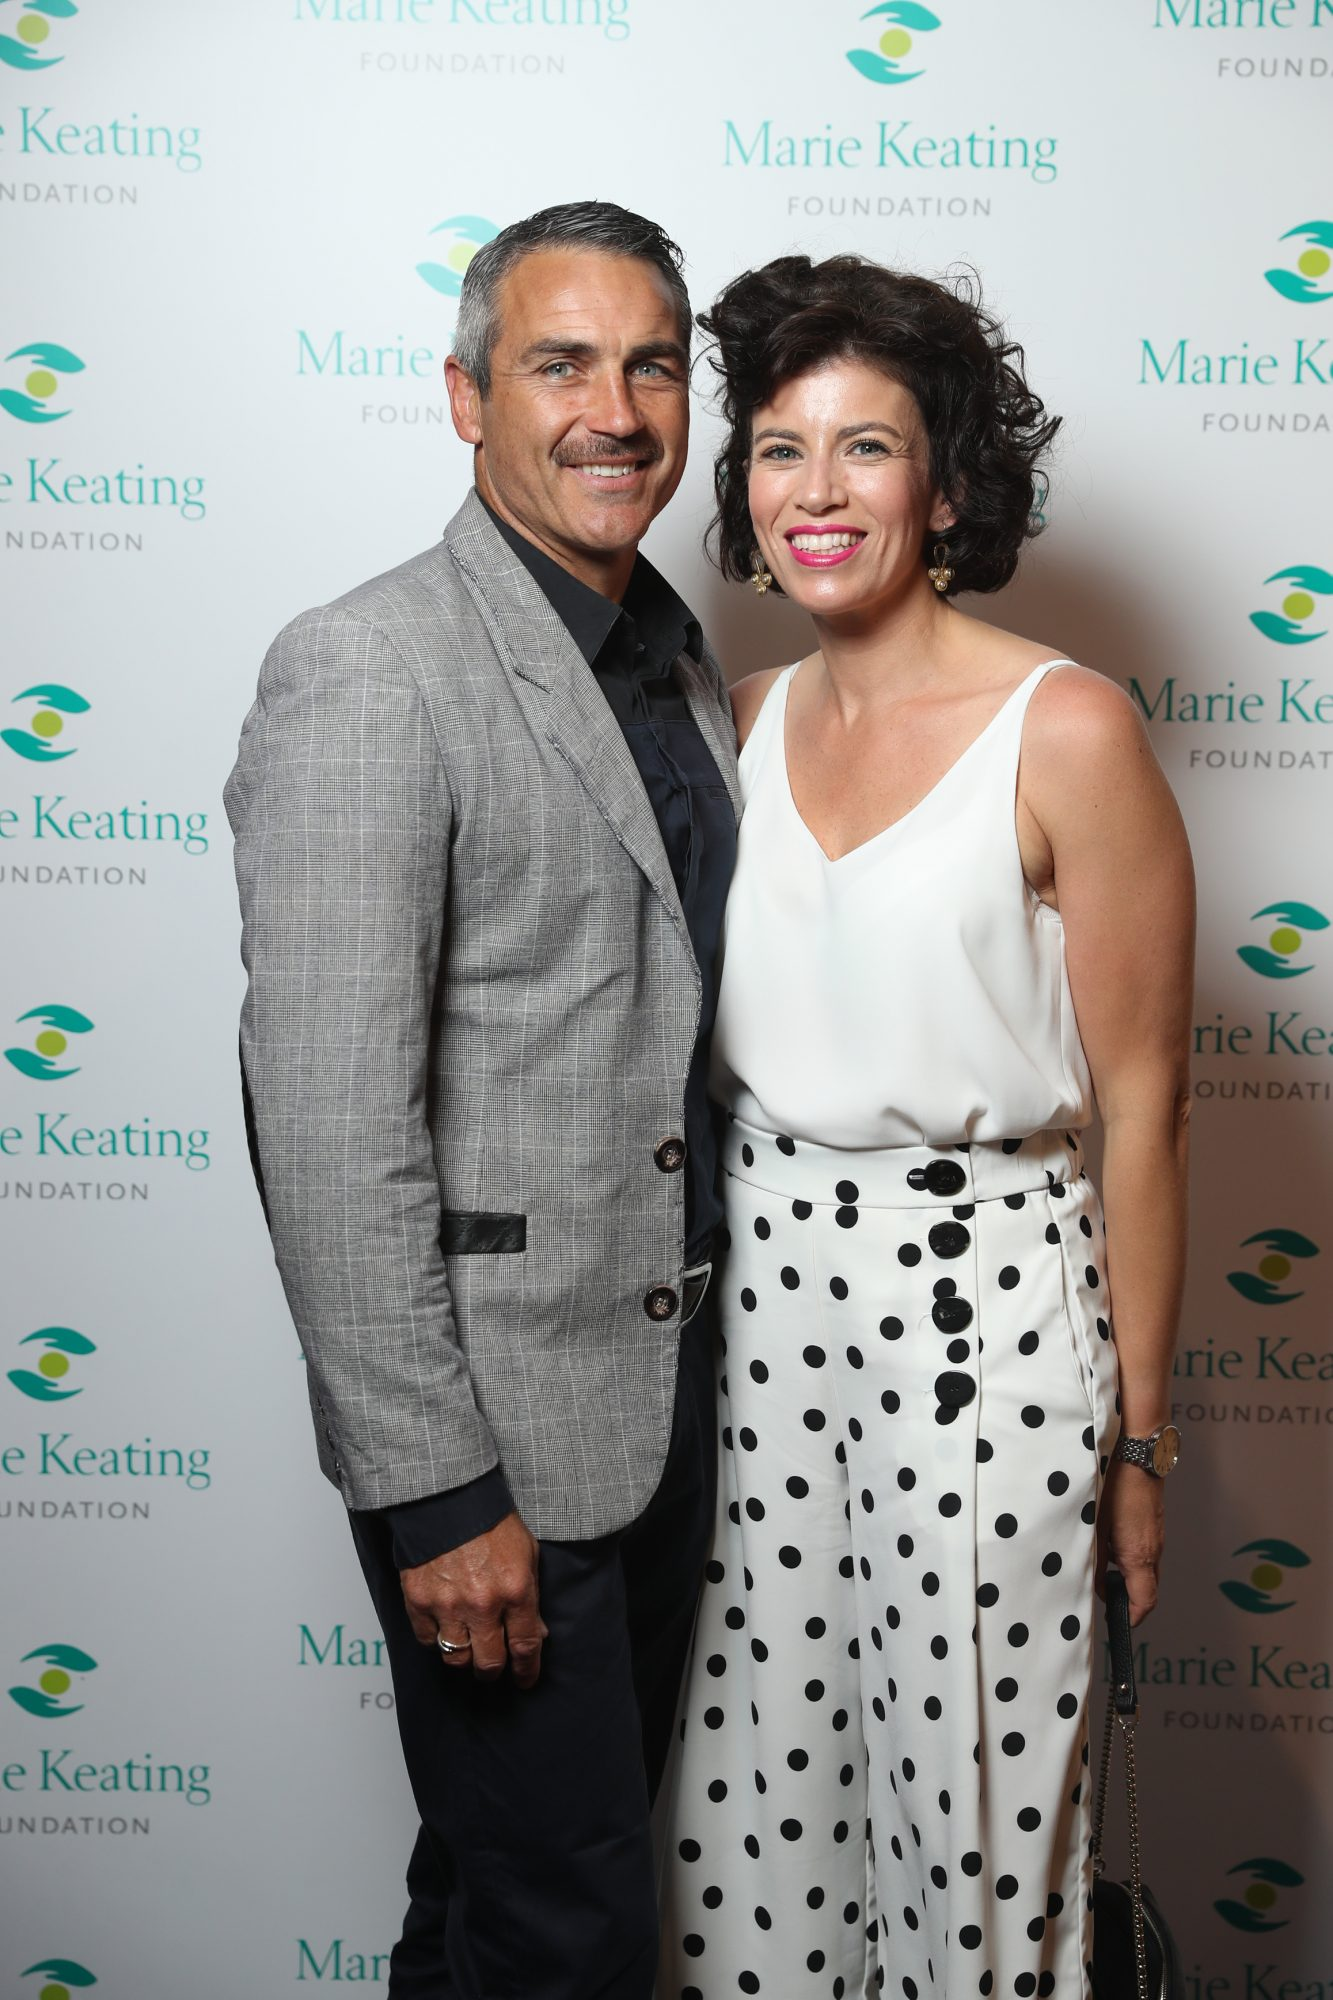 Robert and Tania Shield at the Marie Keating Foundation Celebrity Golf Classic. Picture: Jason Clarke